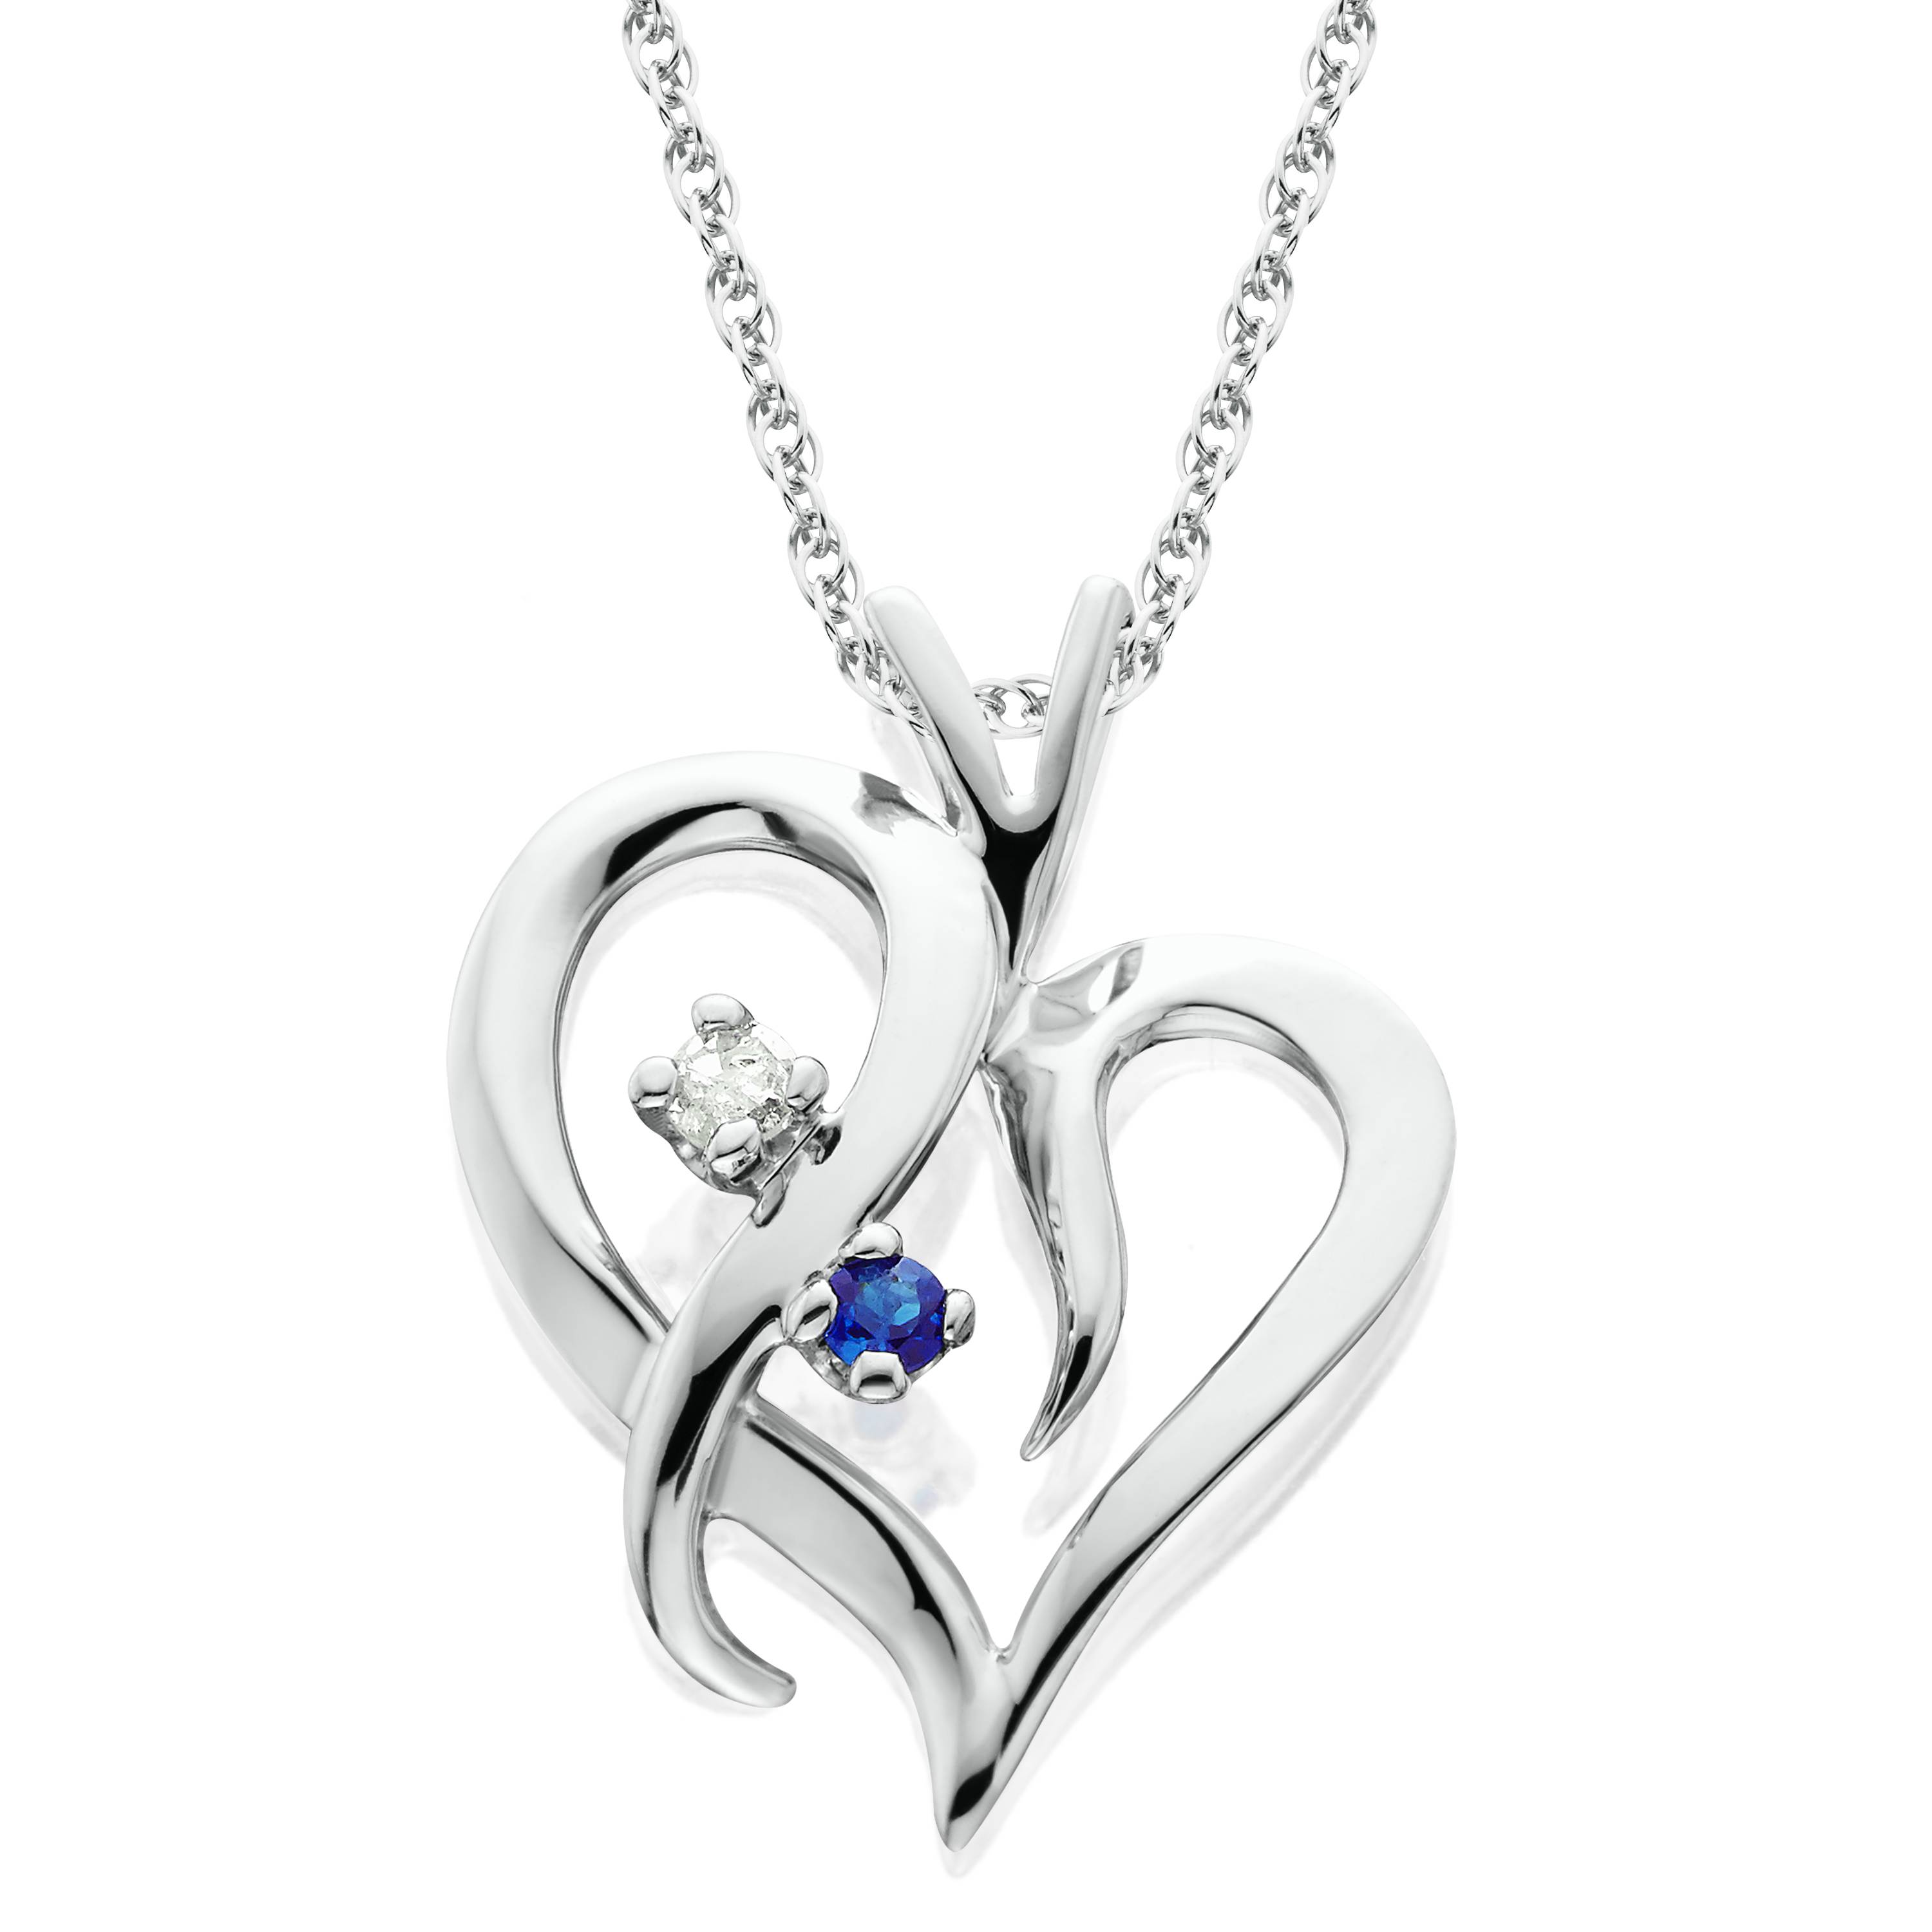 Blue Sapphire & Diamond Heart Pendant 14 KT White Gold With 18